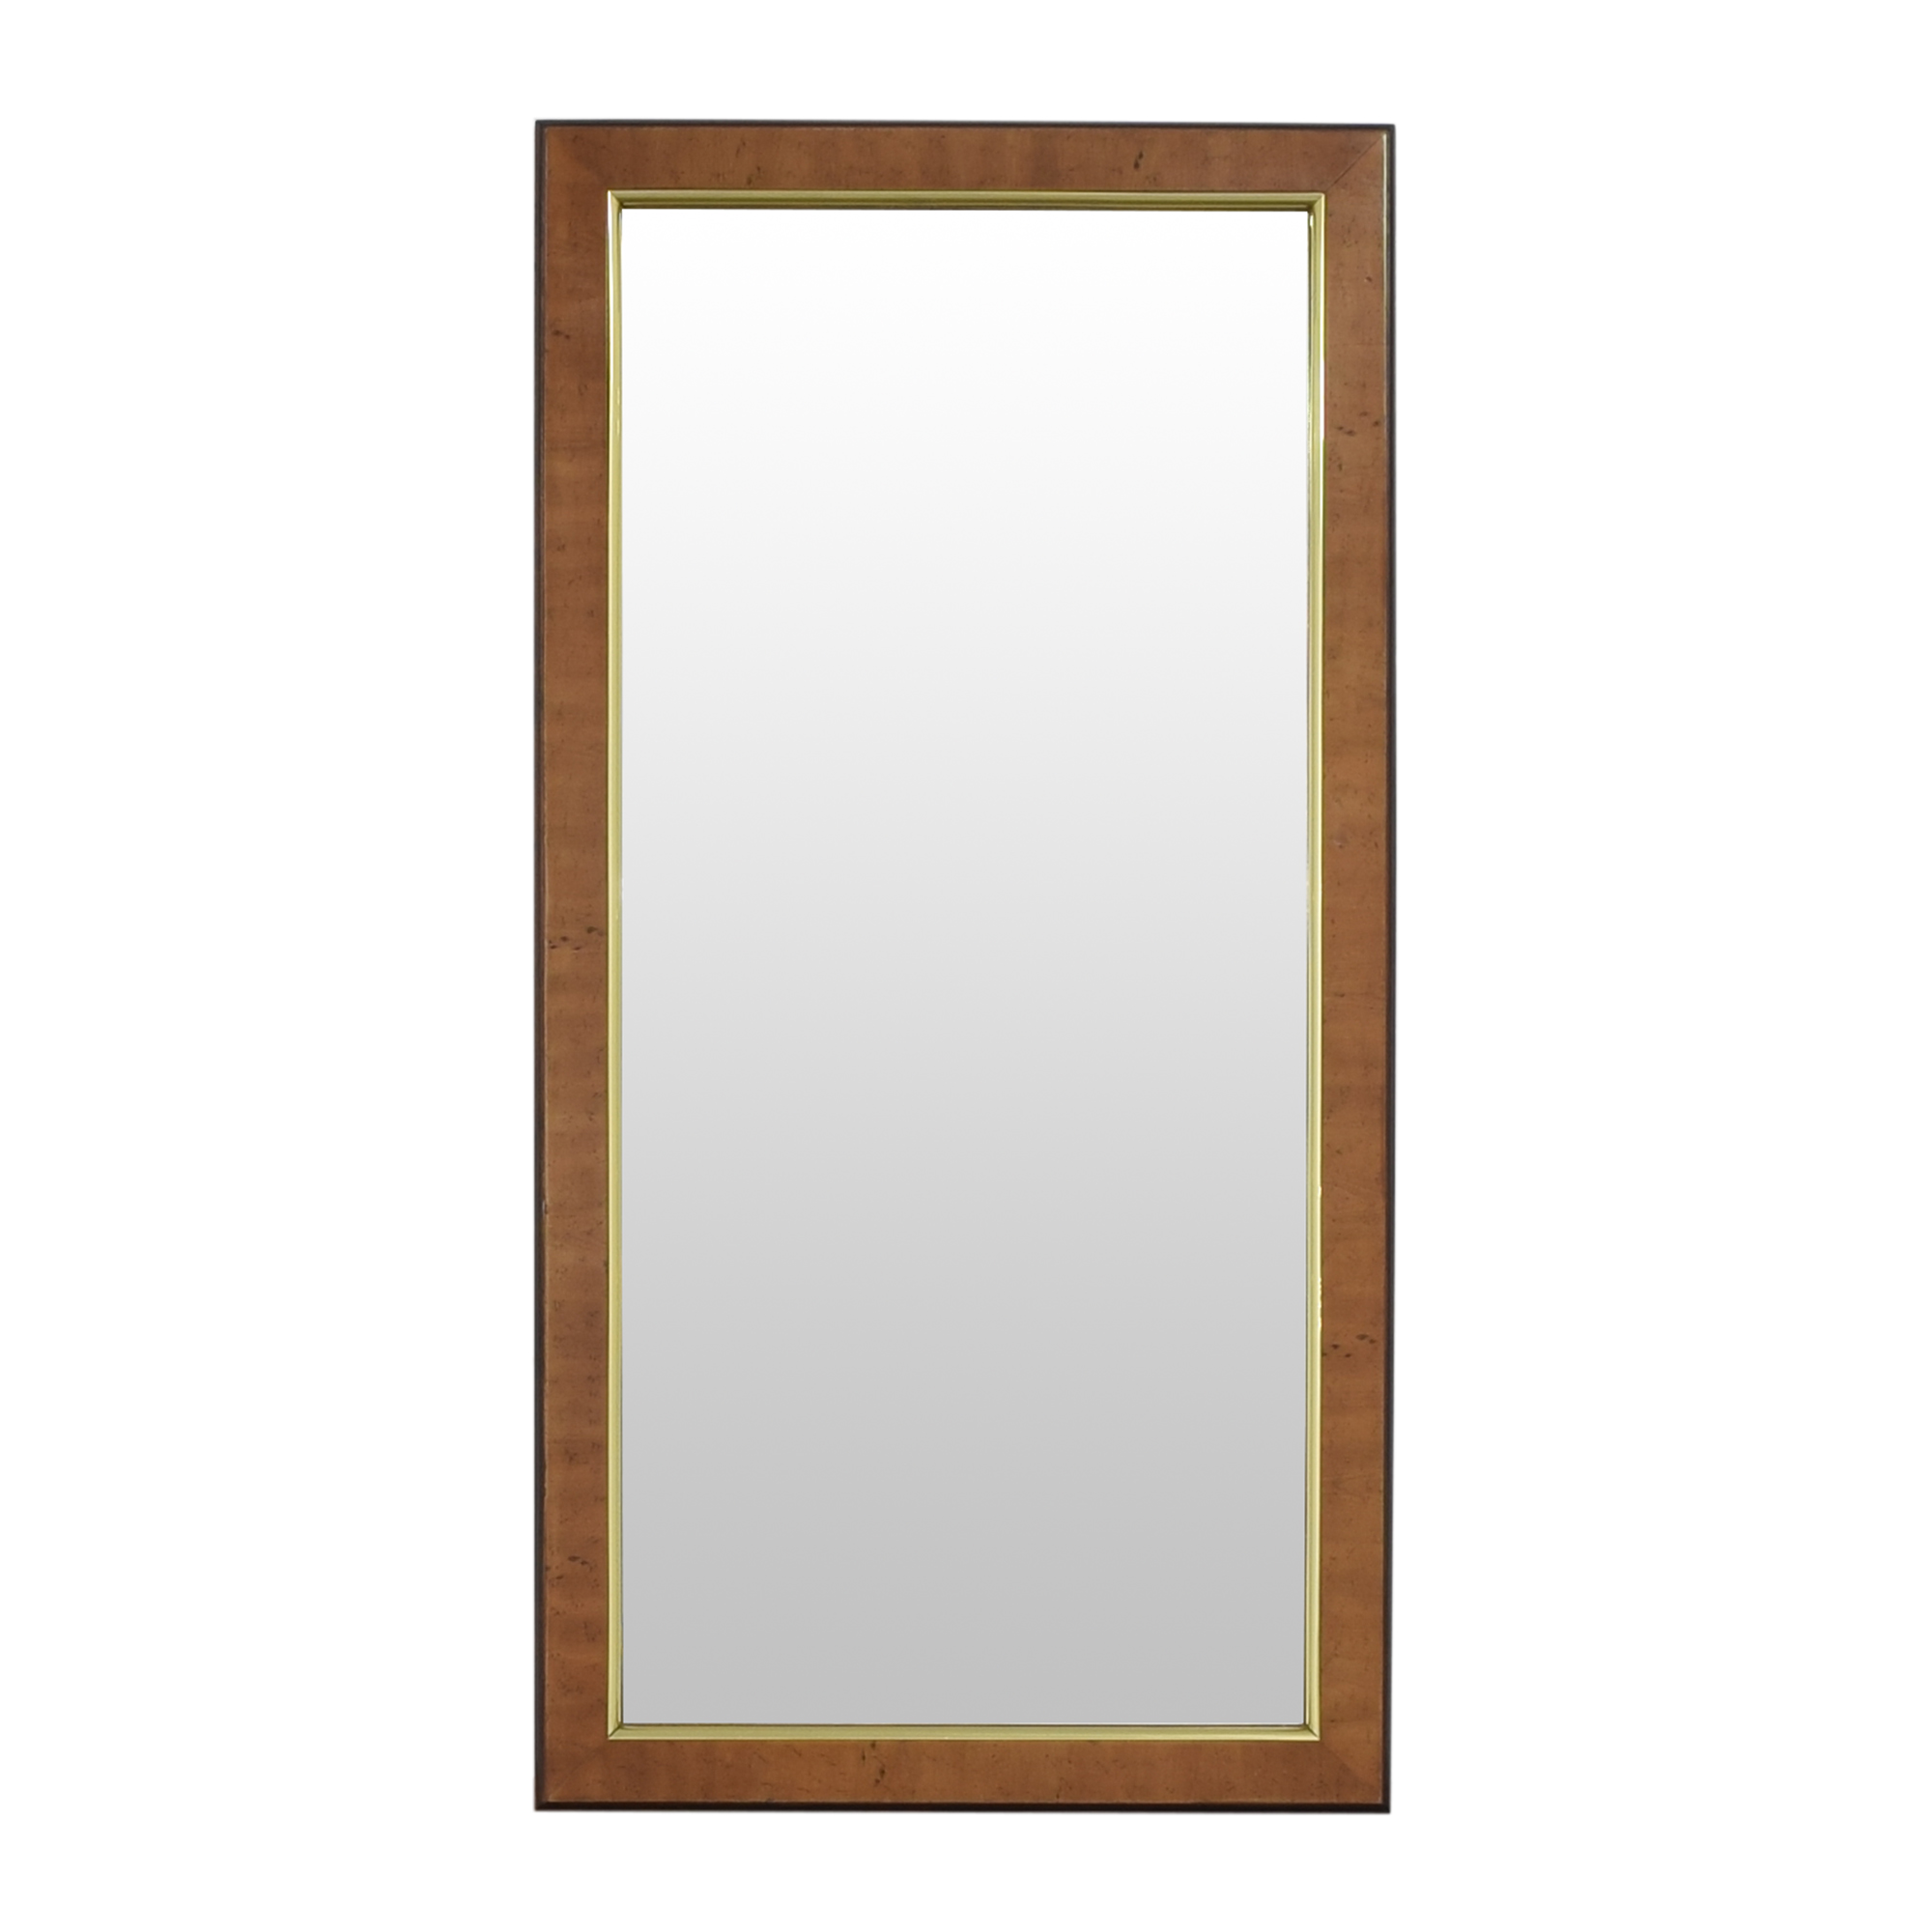 Drexel Heritage Drexel Heritage Avenues Collection Mirror for sale